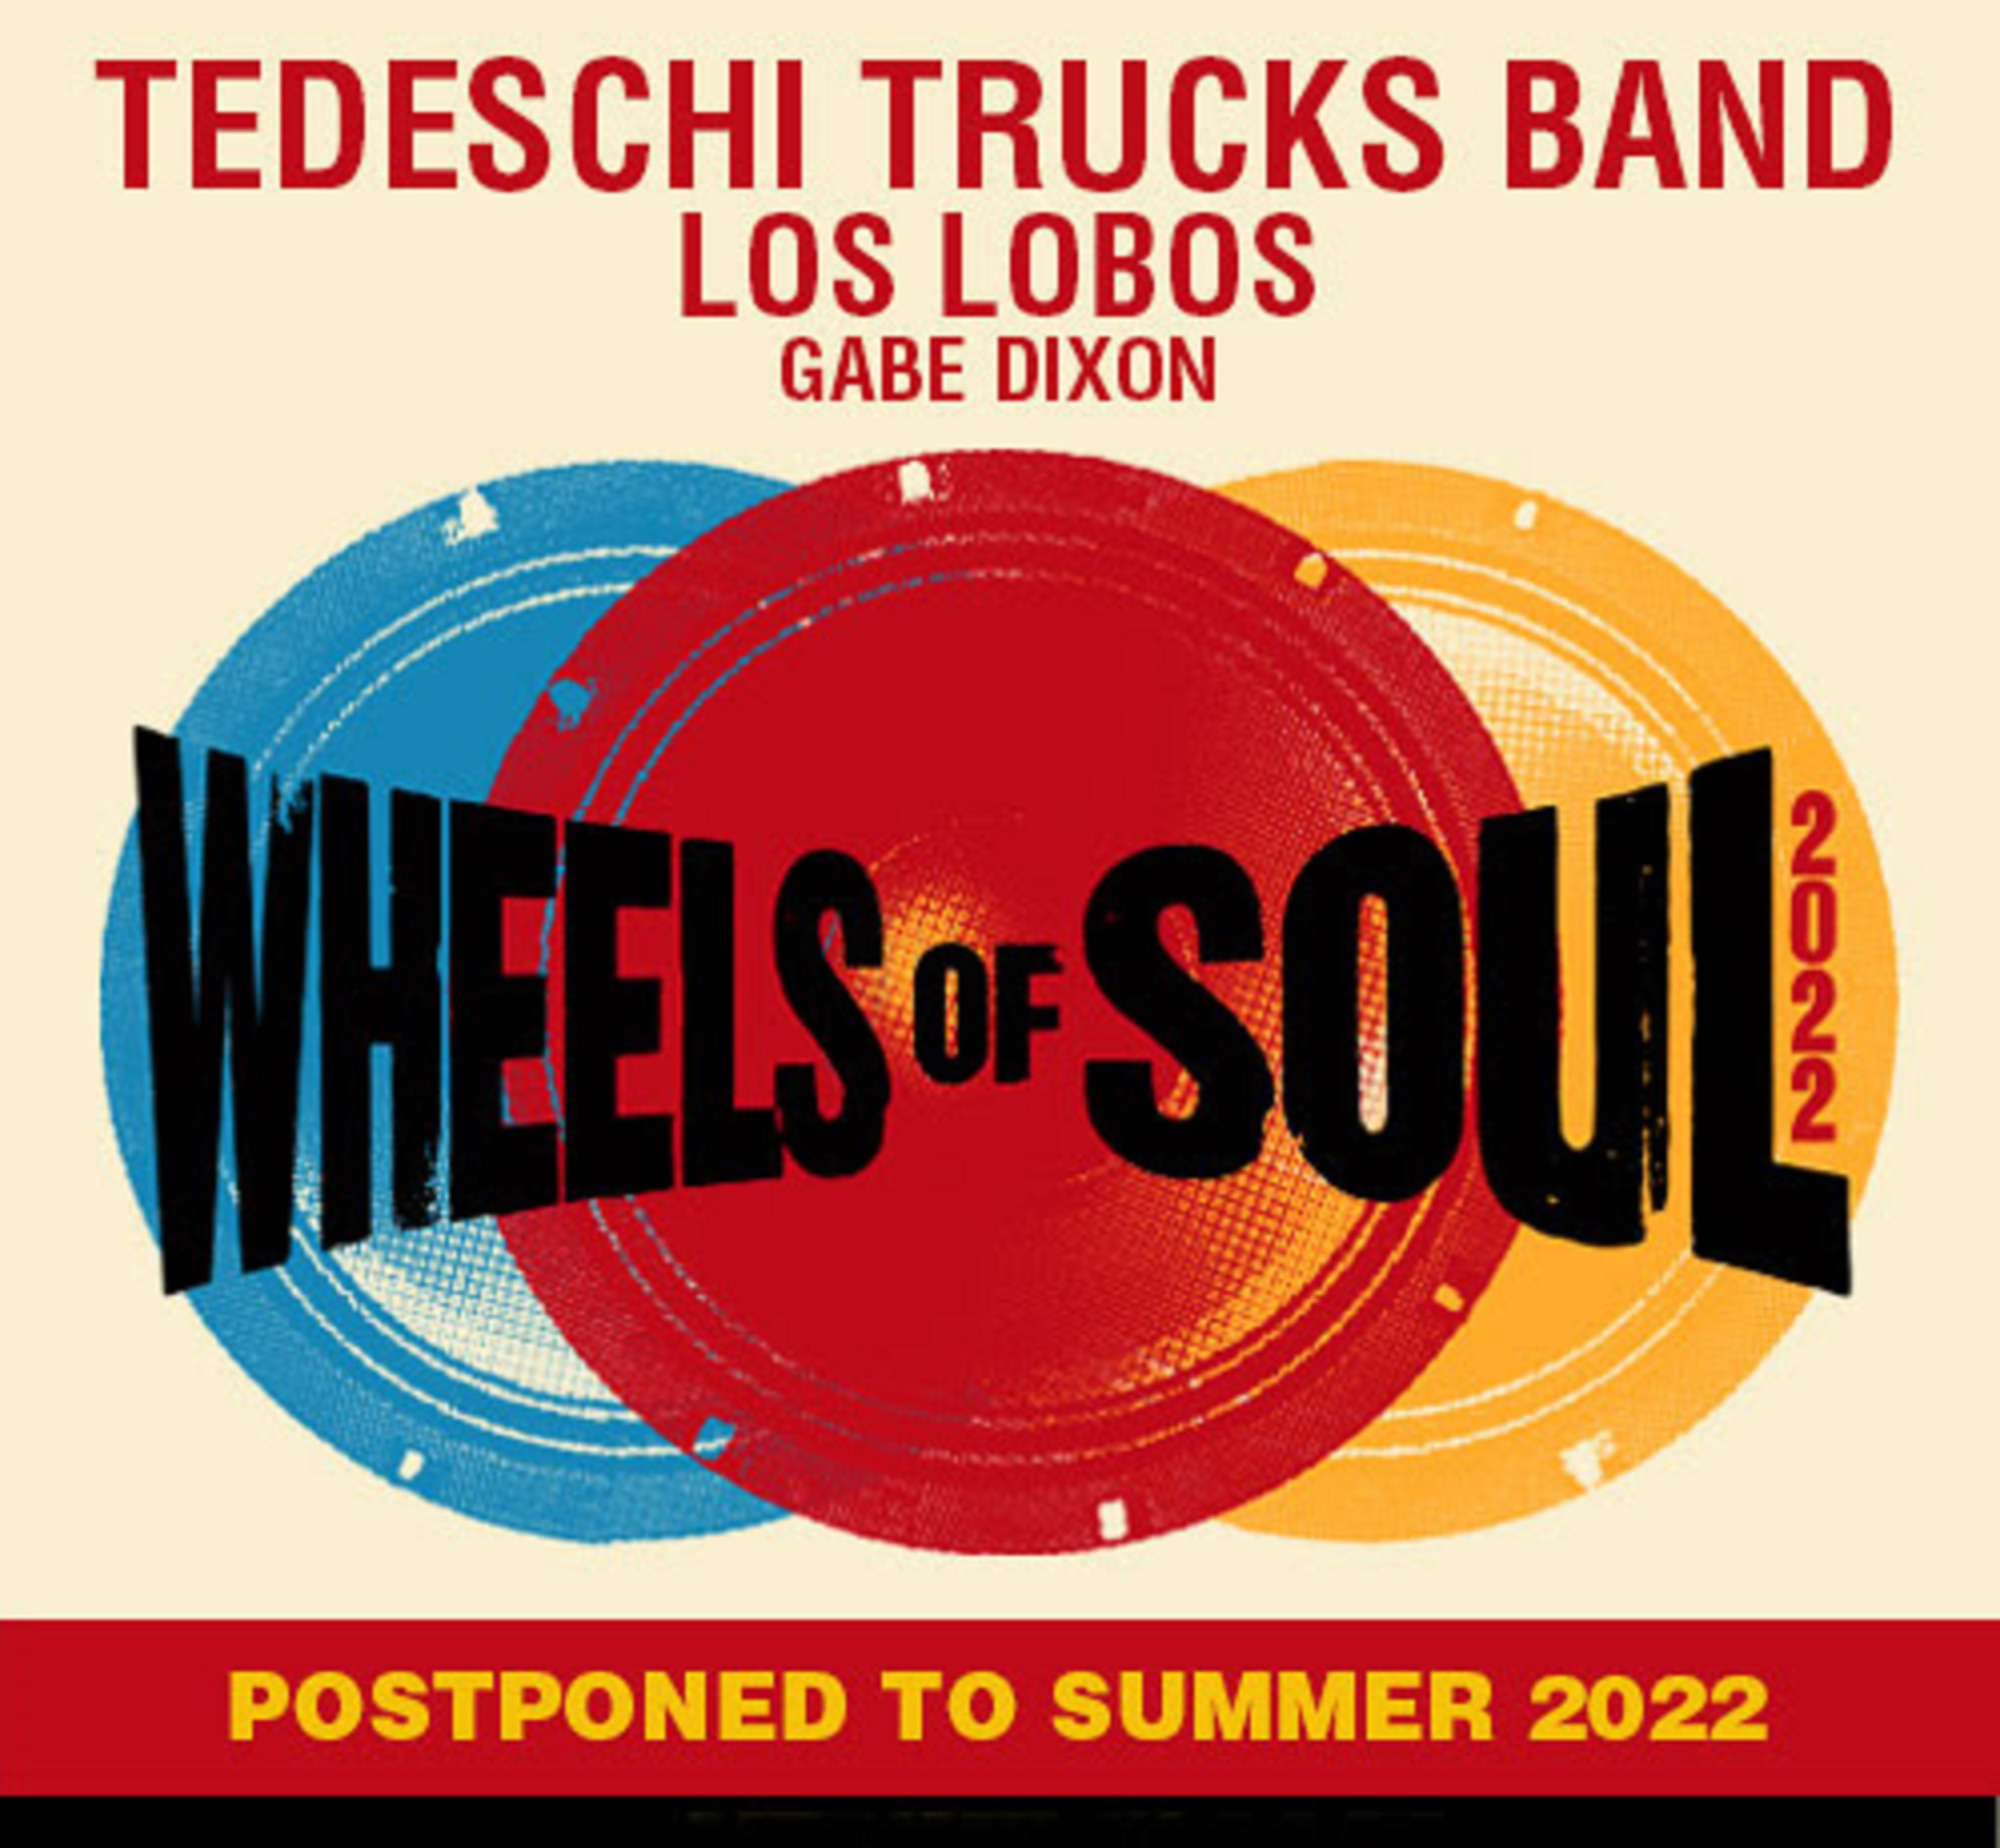 TEDESCHI TRUCKS BAND Postpones Summer 'Wheels of Soul' Tour to 2022